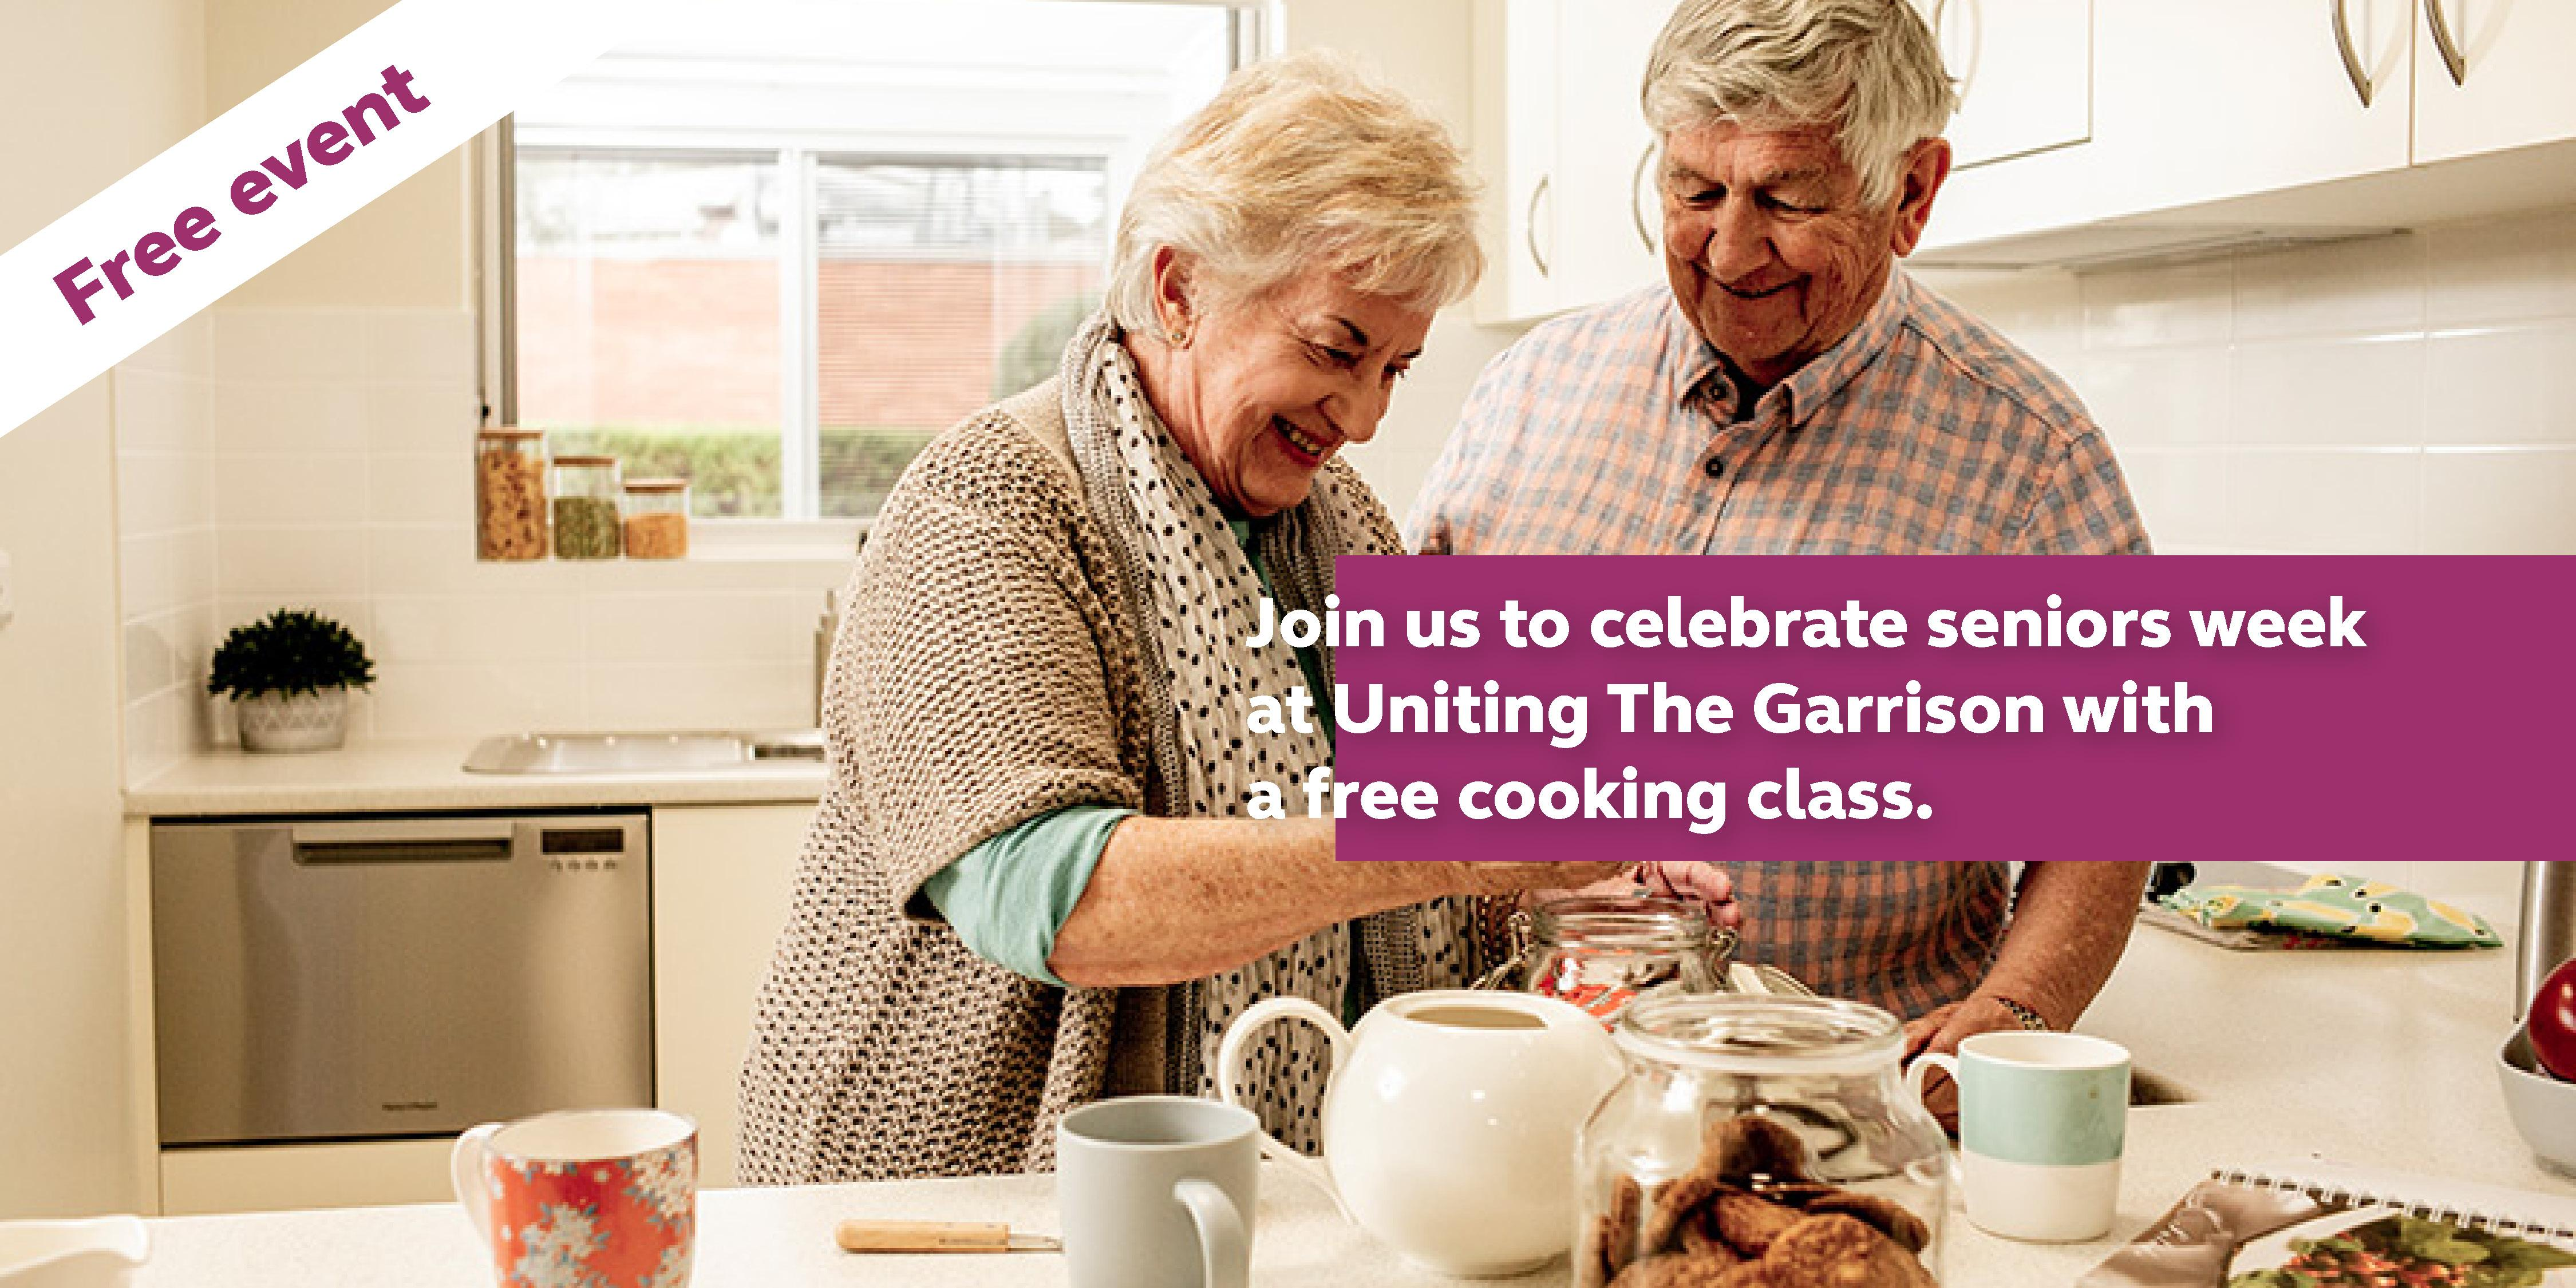 Join us for NSW Seniors Festival fun at Uniting The Garrison.